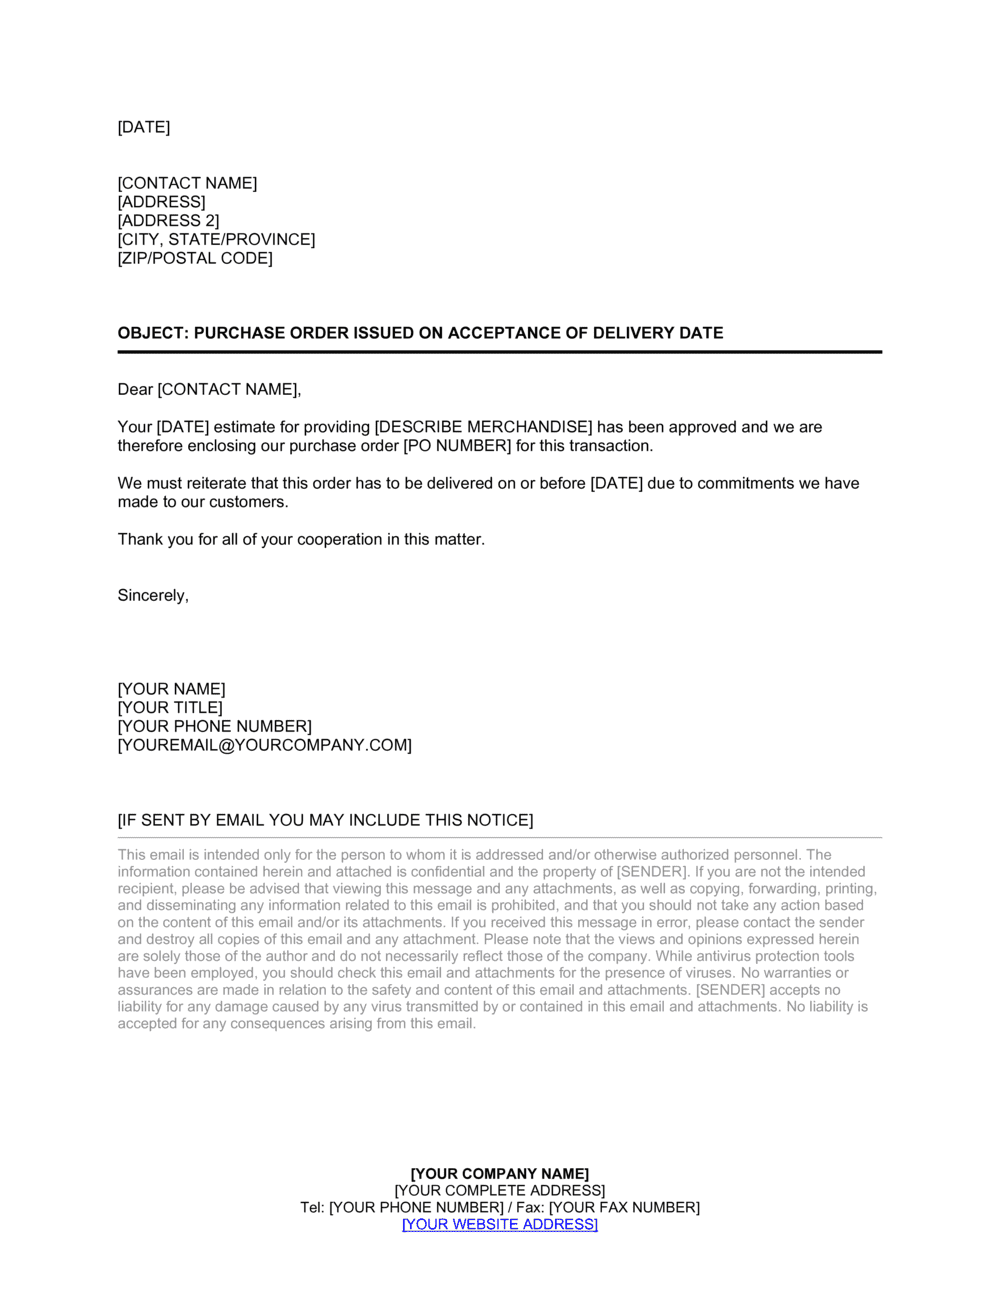 Business-in-a-Box's Letter Purchase Order Issued on Acceptance of Delivery Date Template